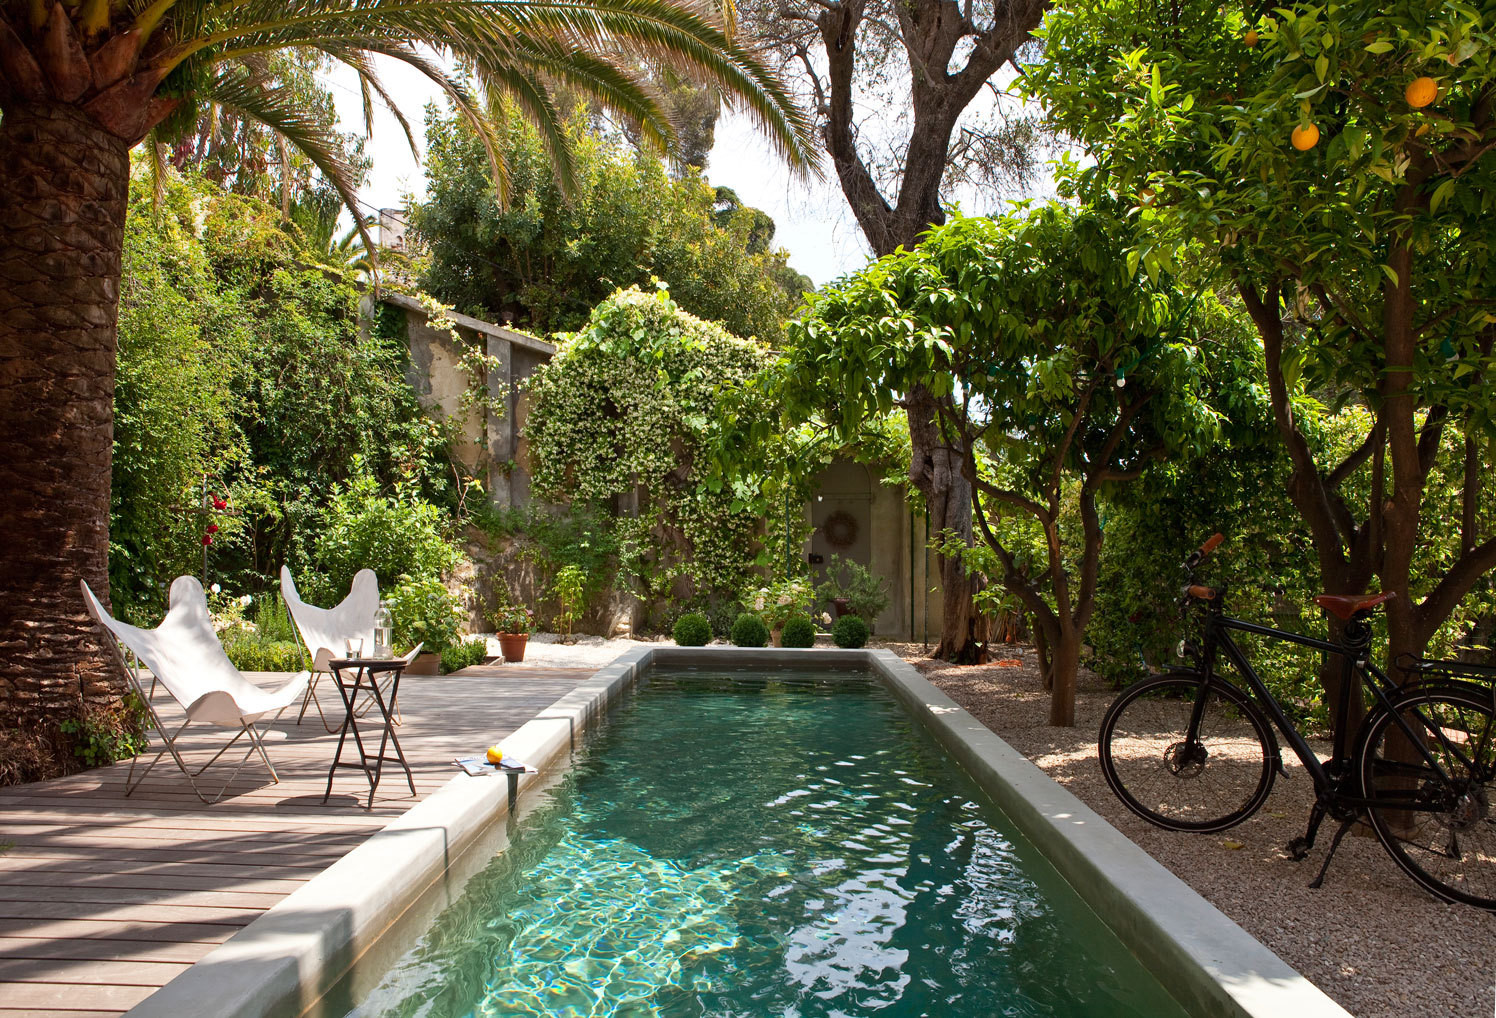 Swimming cool home tour an idyllic french riviera for Hire a swimming pool for the garden